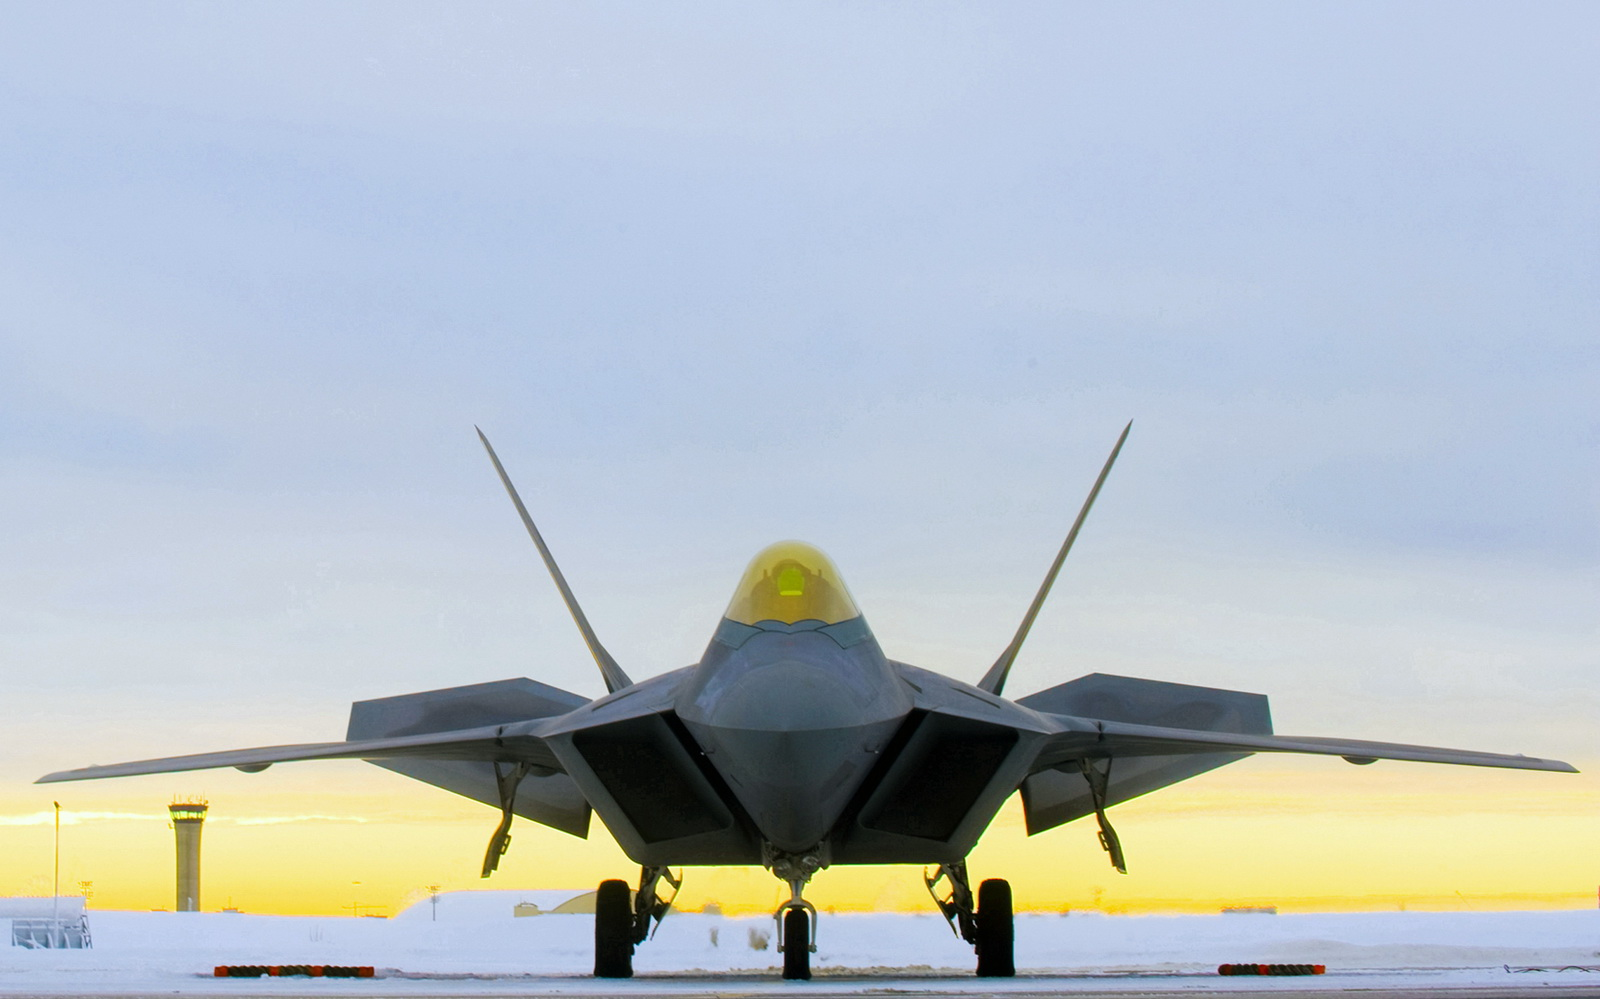 f 22 raptor wallpaper hd | imagebank.biz